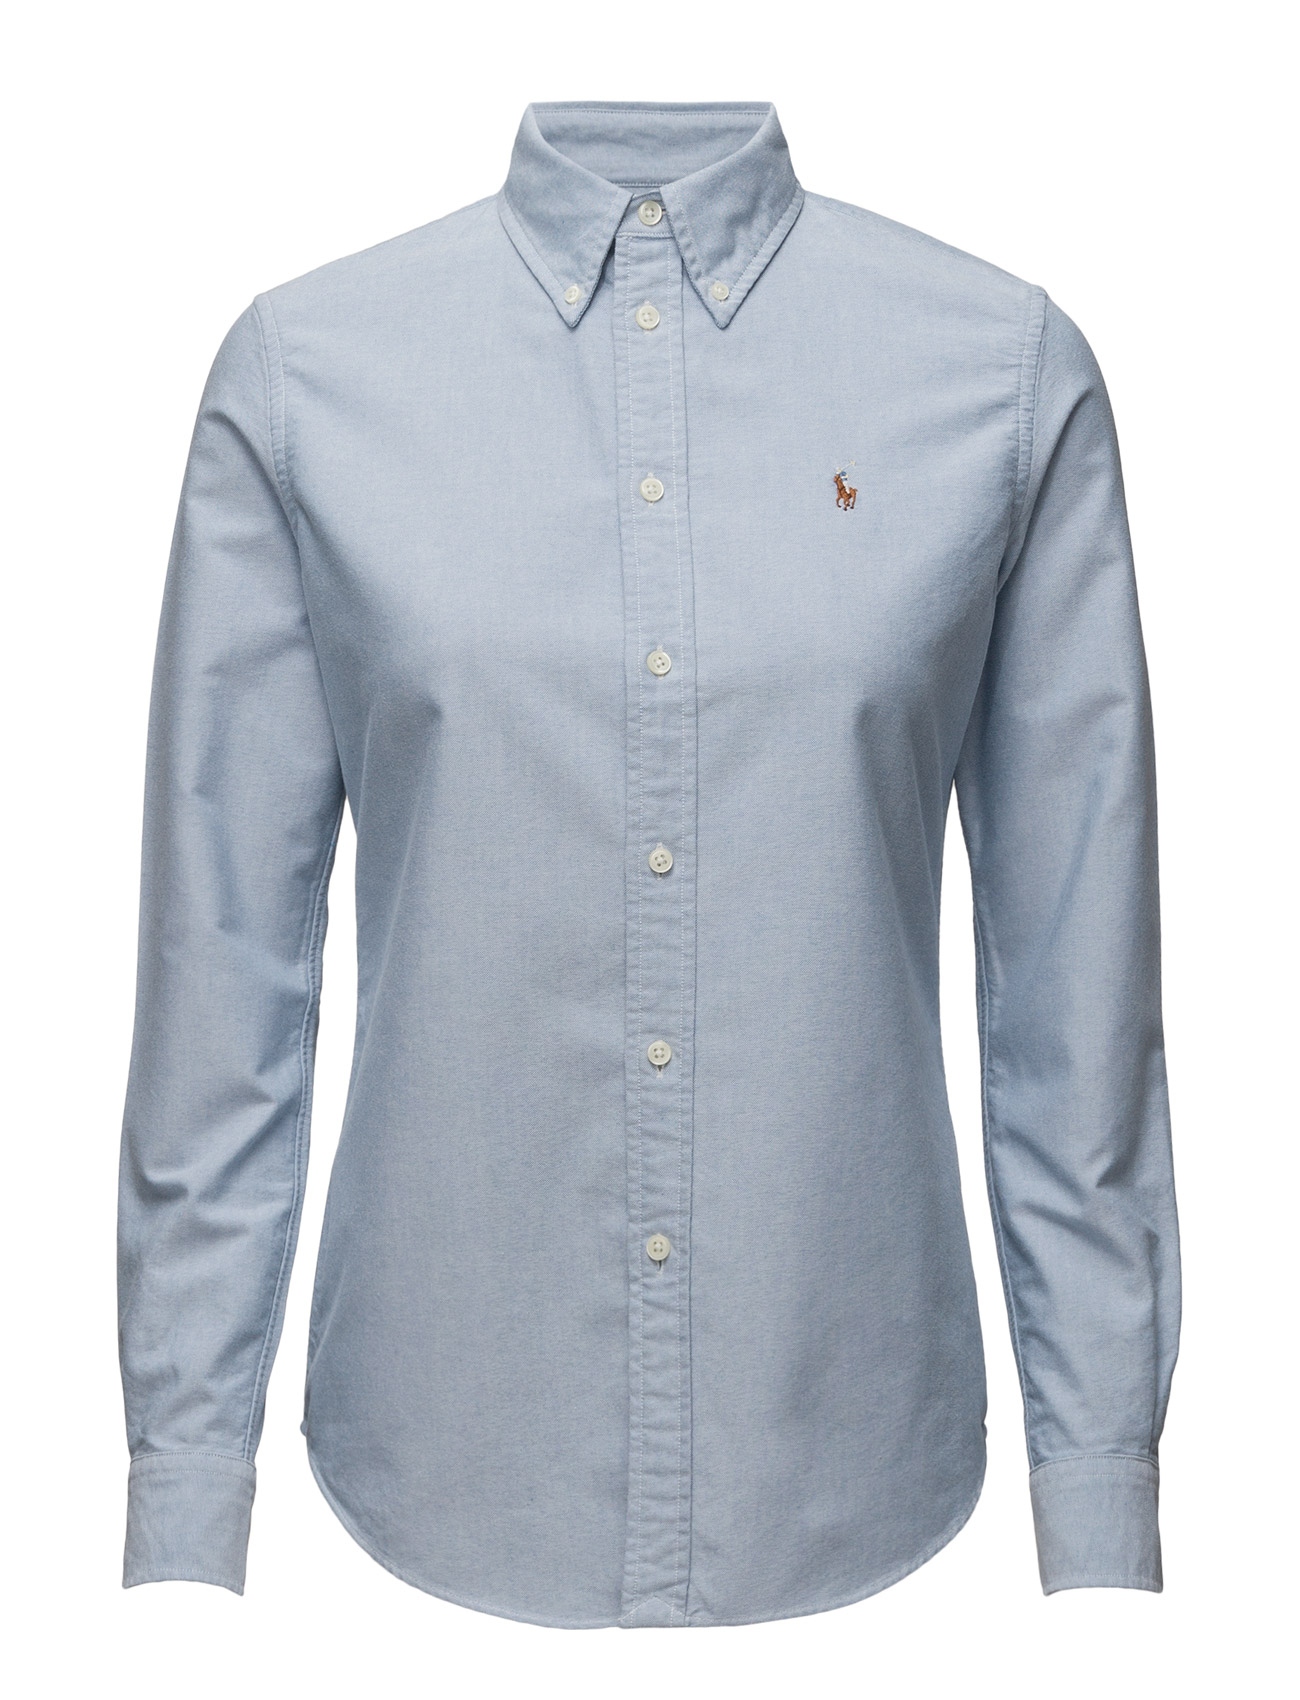 Polo Ralph Lauren Custom Fit Cotton Oxford Shirt